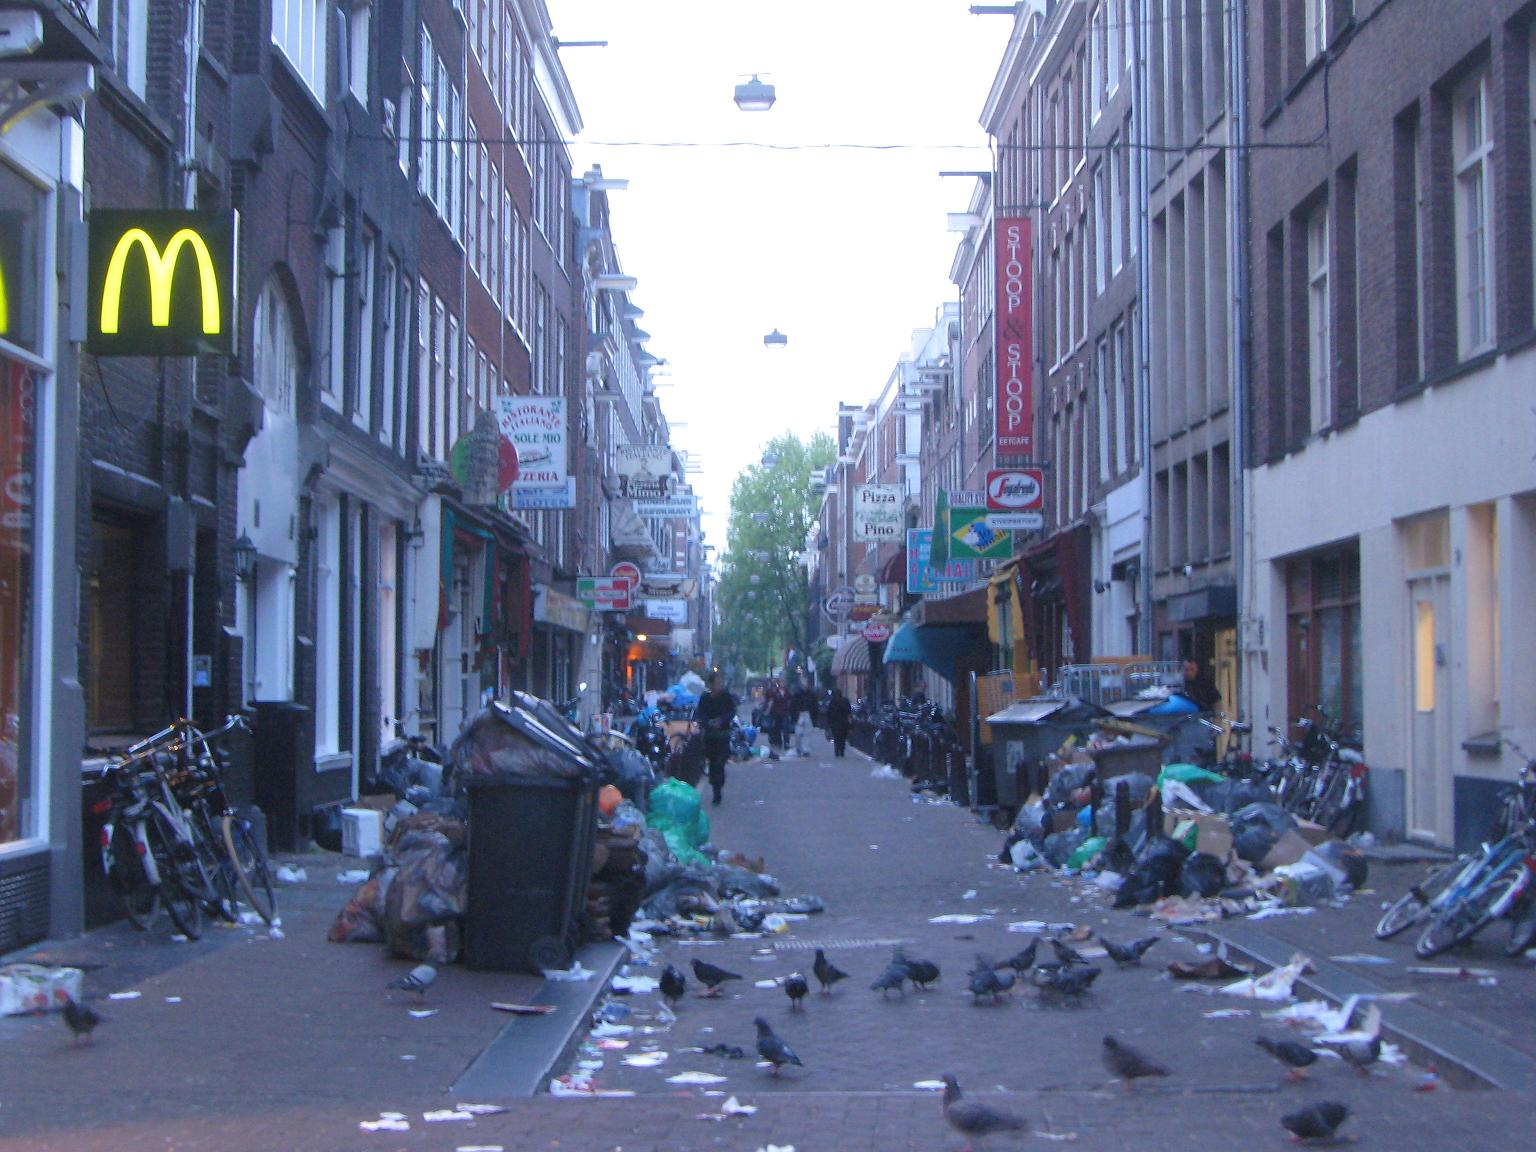 Garbage strike in Amsterdam Holland